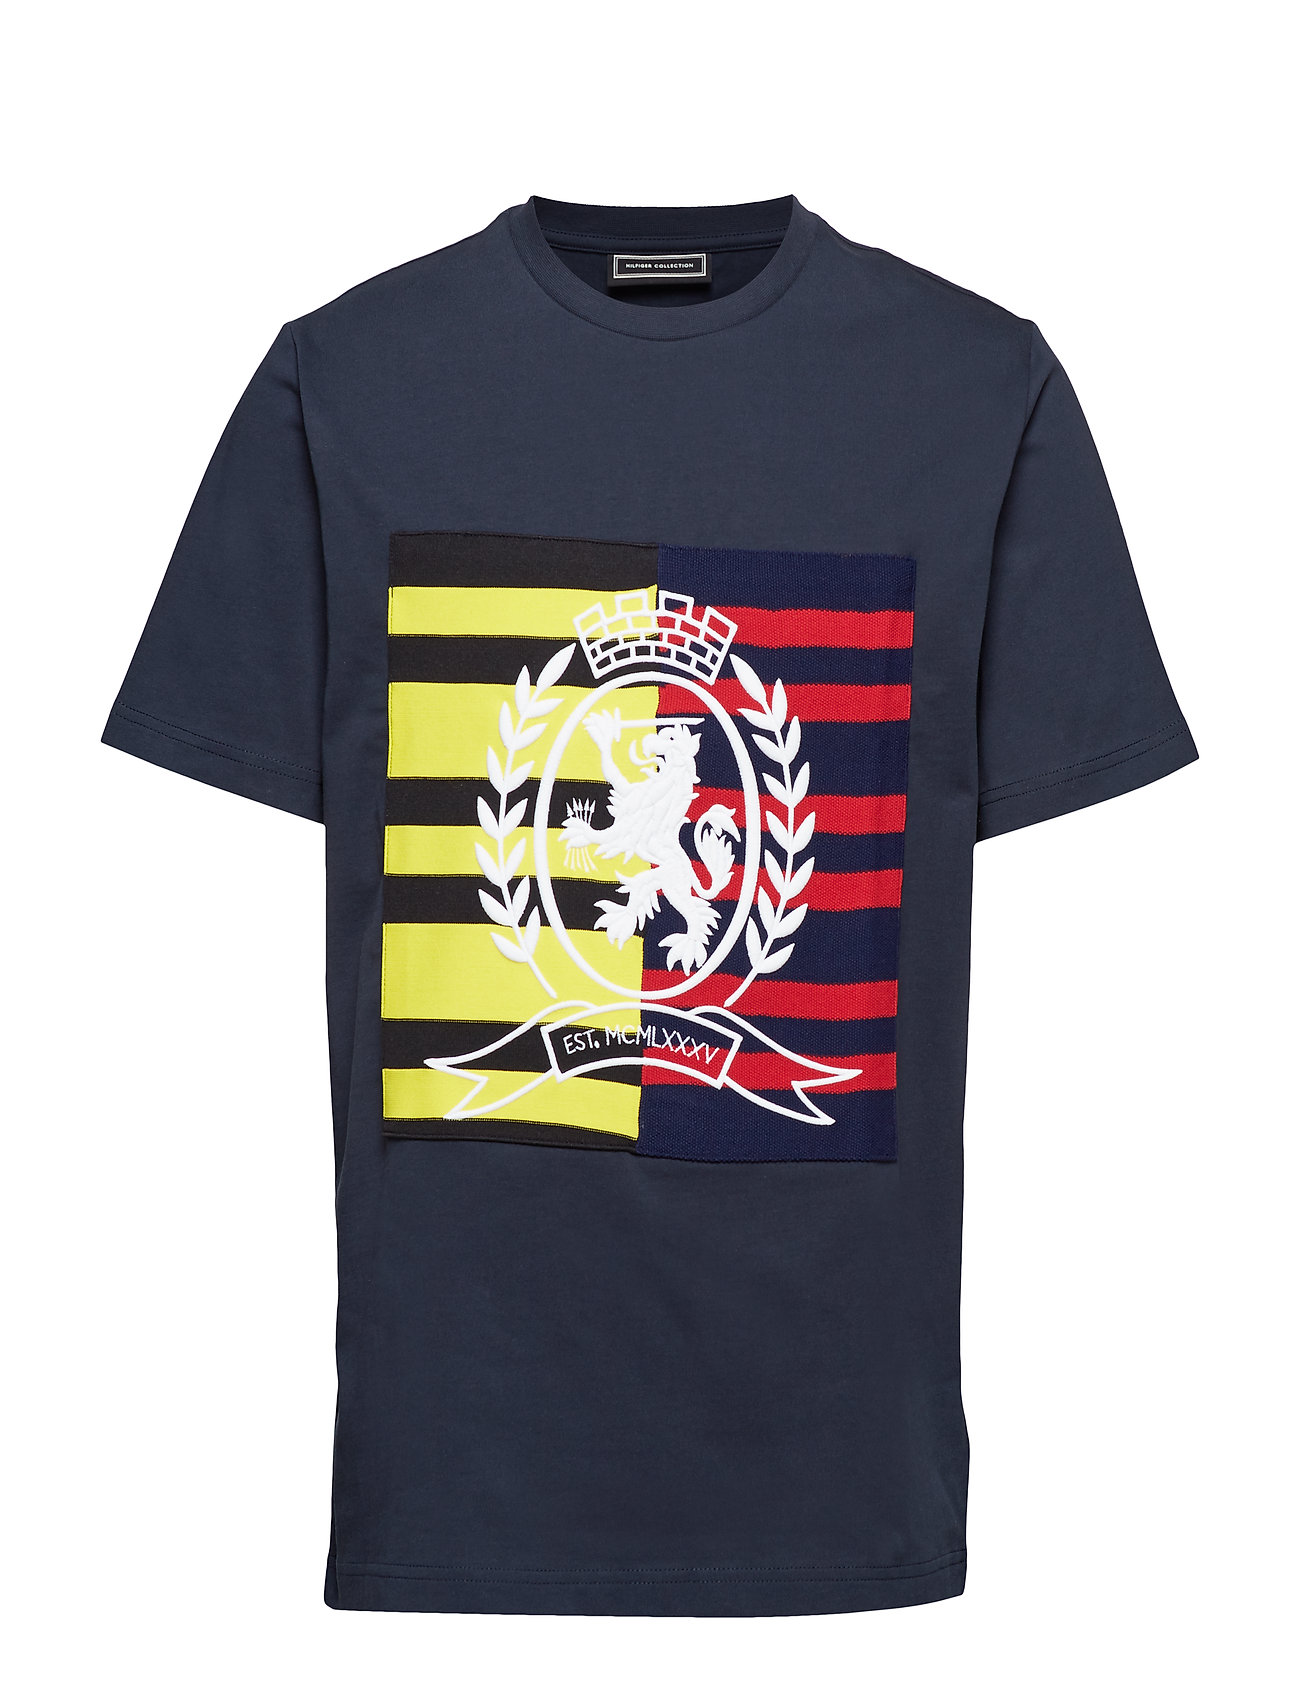 Hilfiger Collection STRIPE AND CREST PAN - SKY CAPTAIN